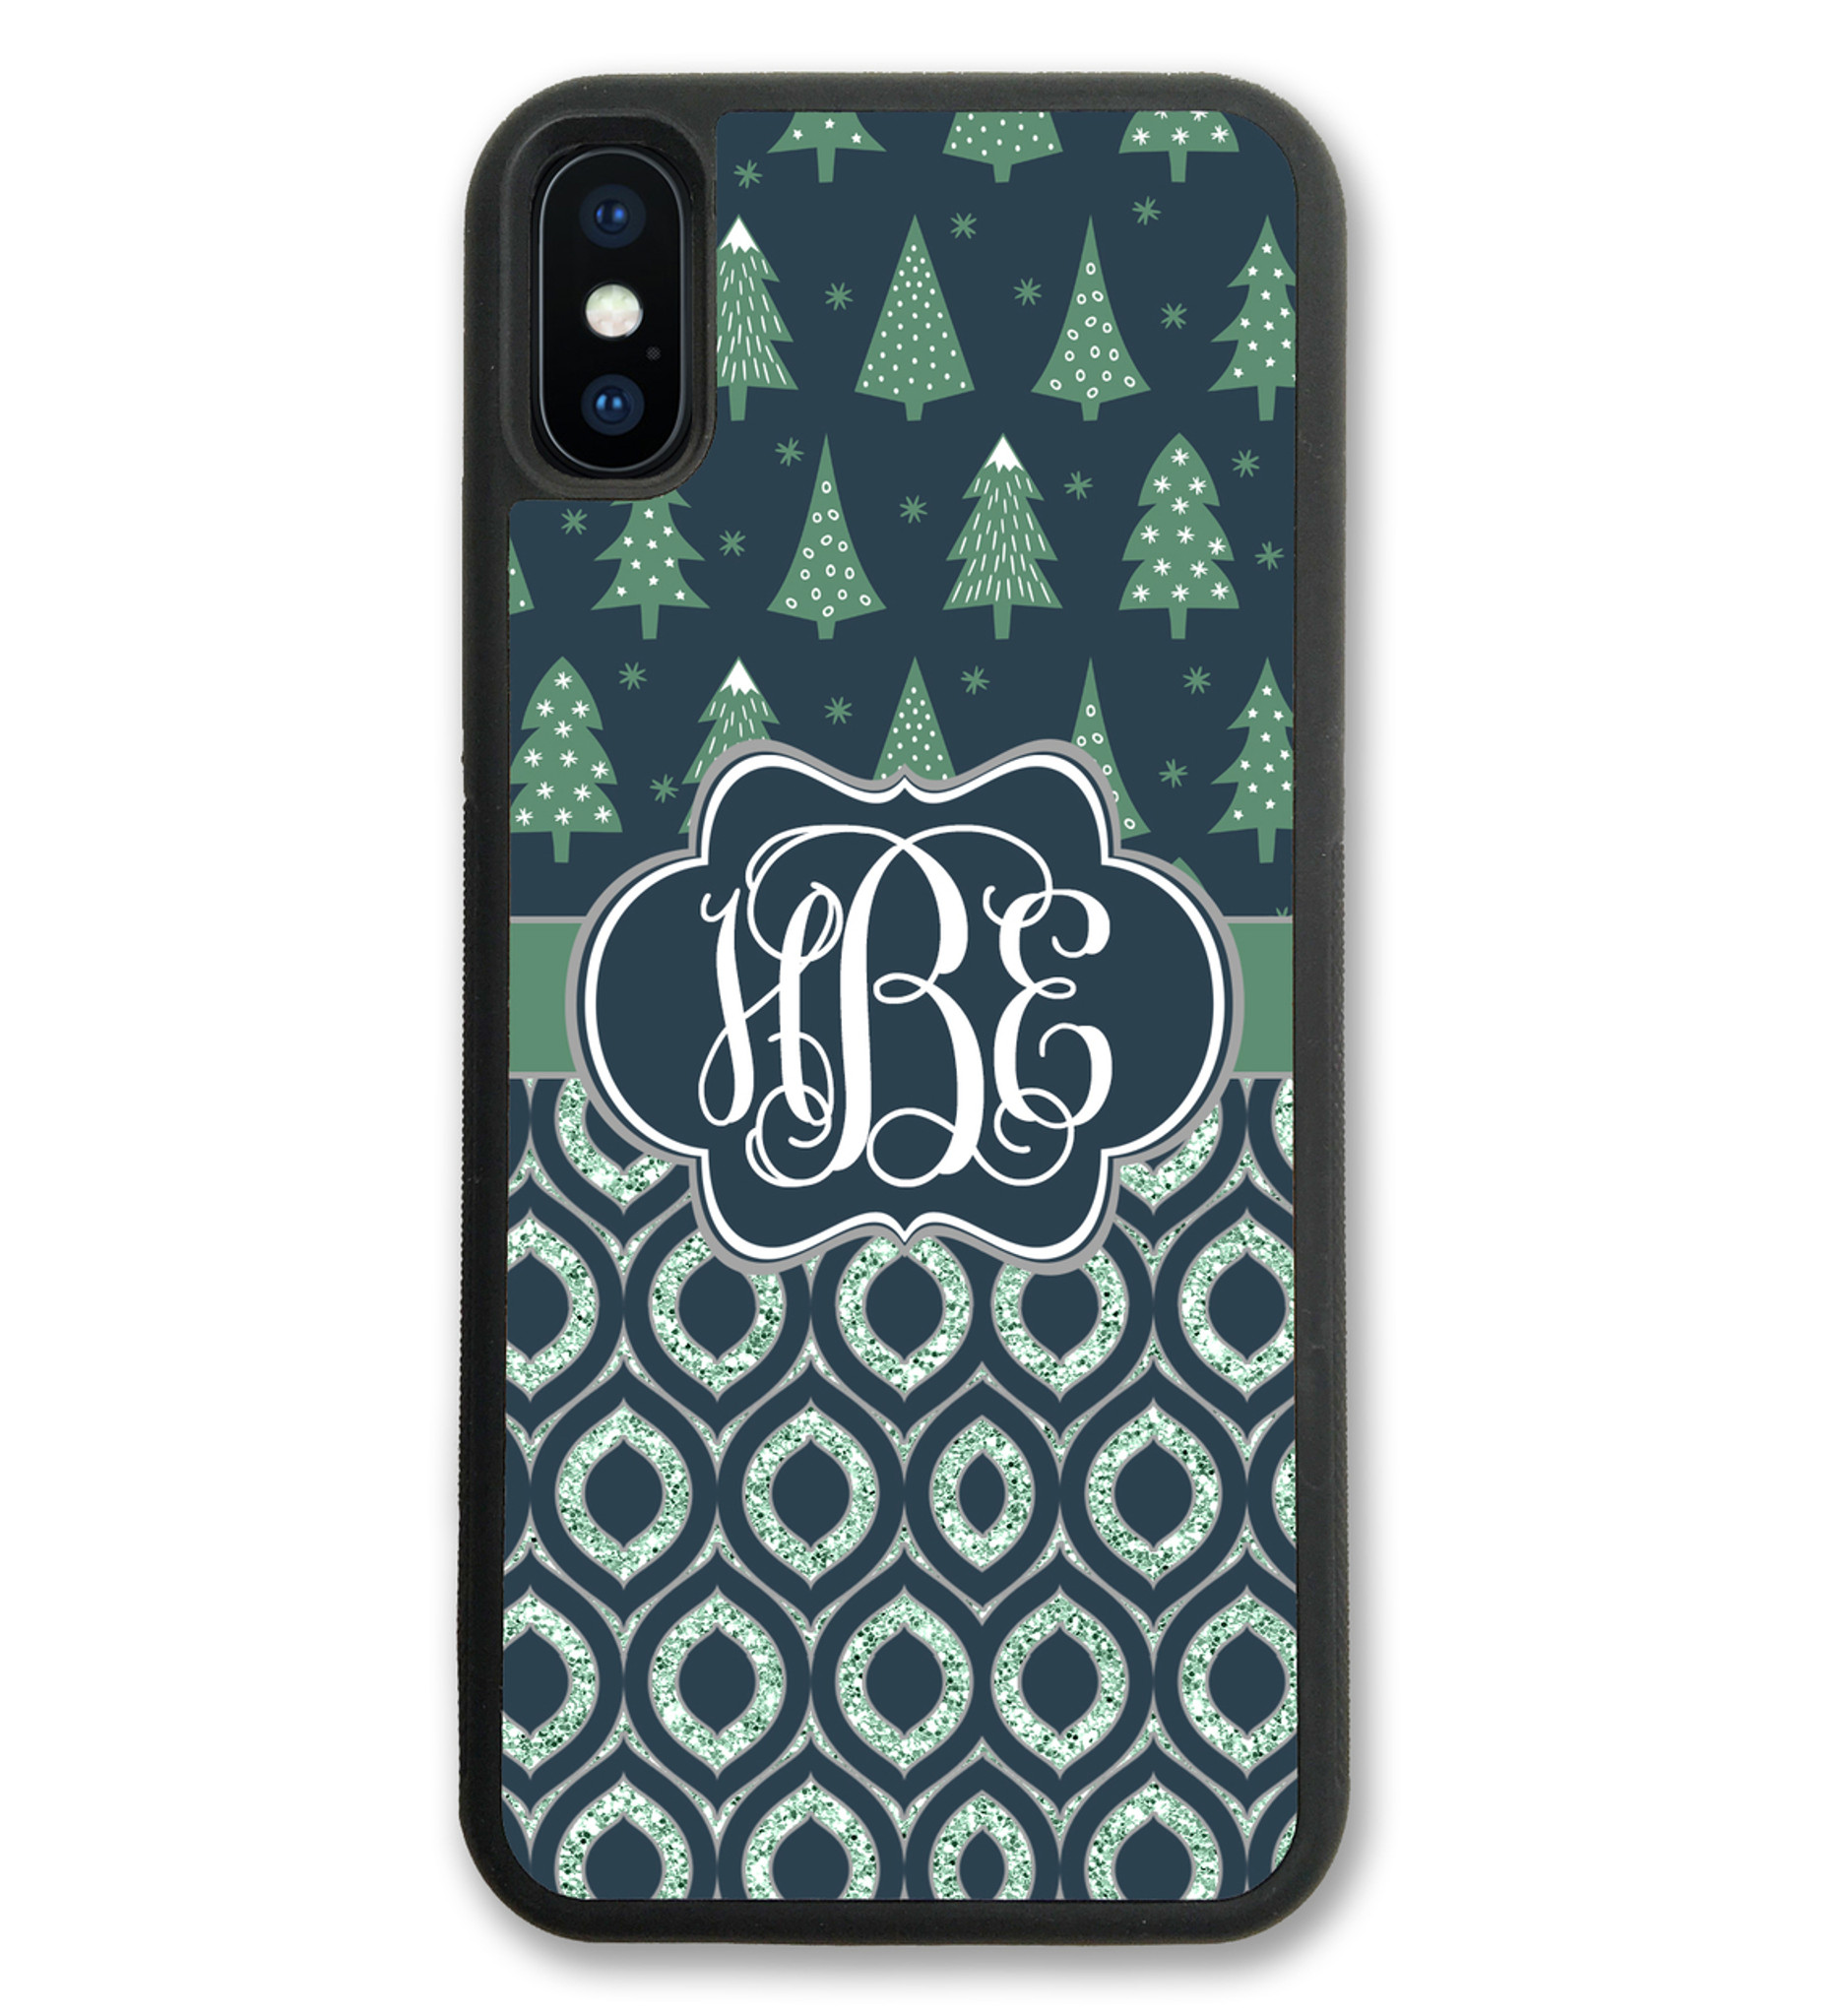 Christmas Iphone X Case.Christmas Trees Iphone X Case Iphone 10 Case Iphone 8 Case Iphone 8 Plus Case All Models